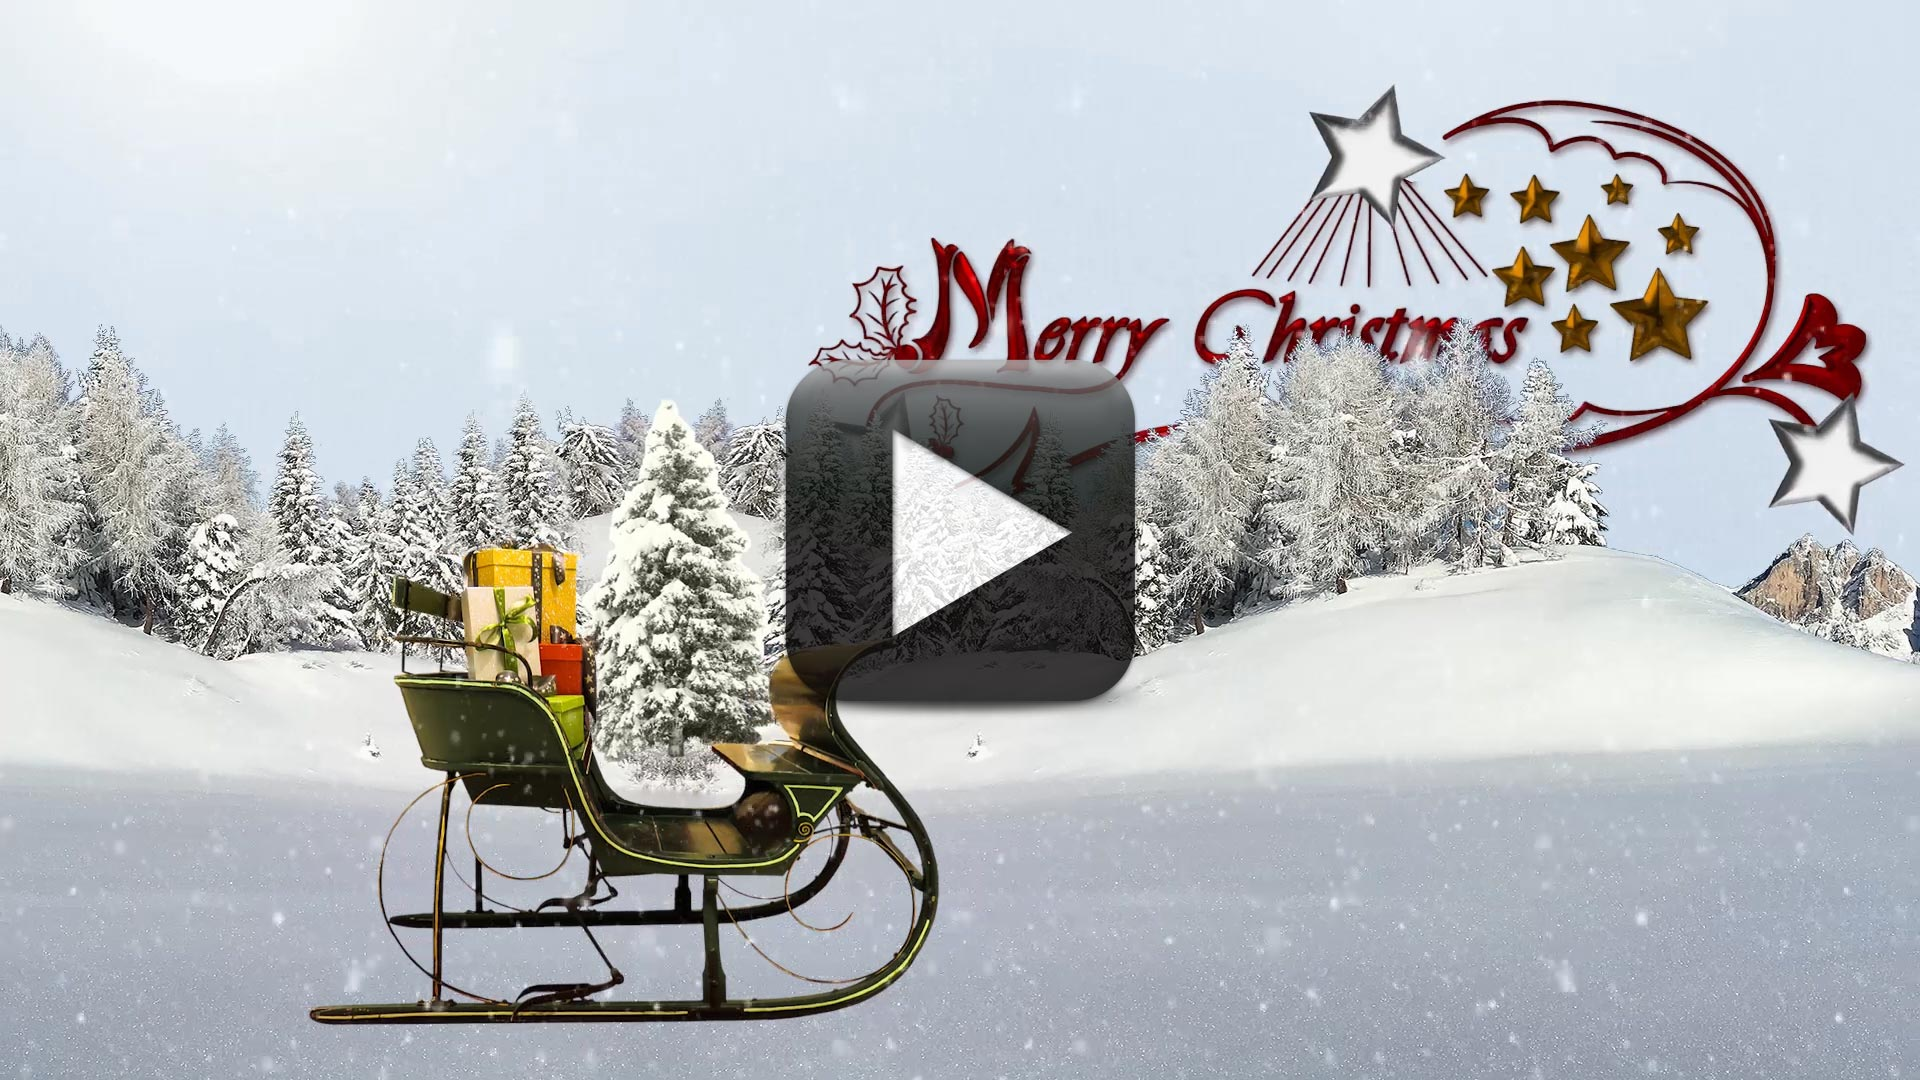 We Wish You A Merry Christmas Free Download Christmas Greetings